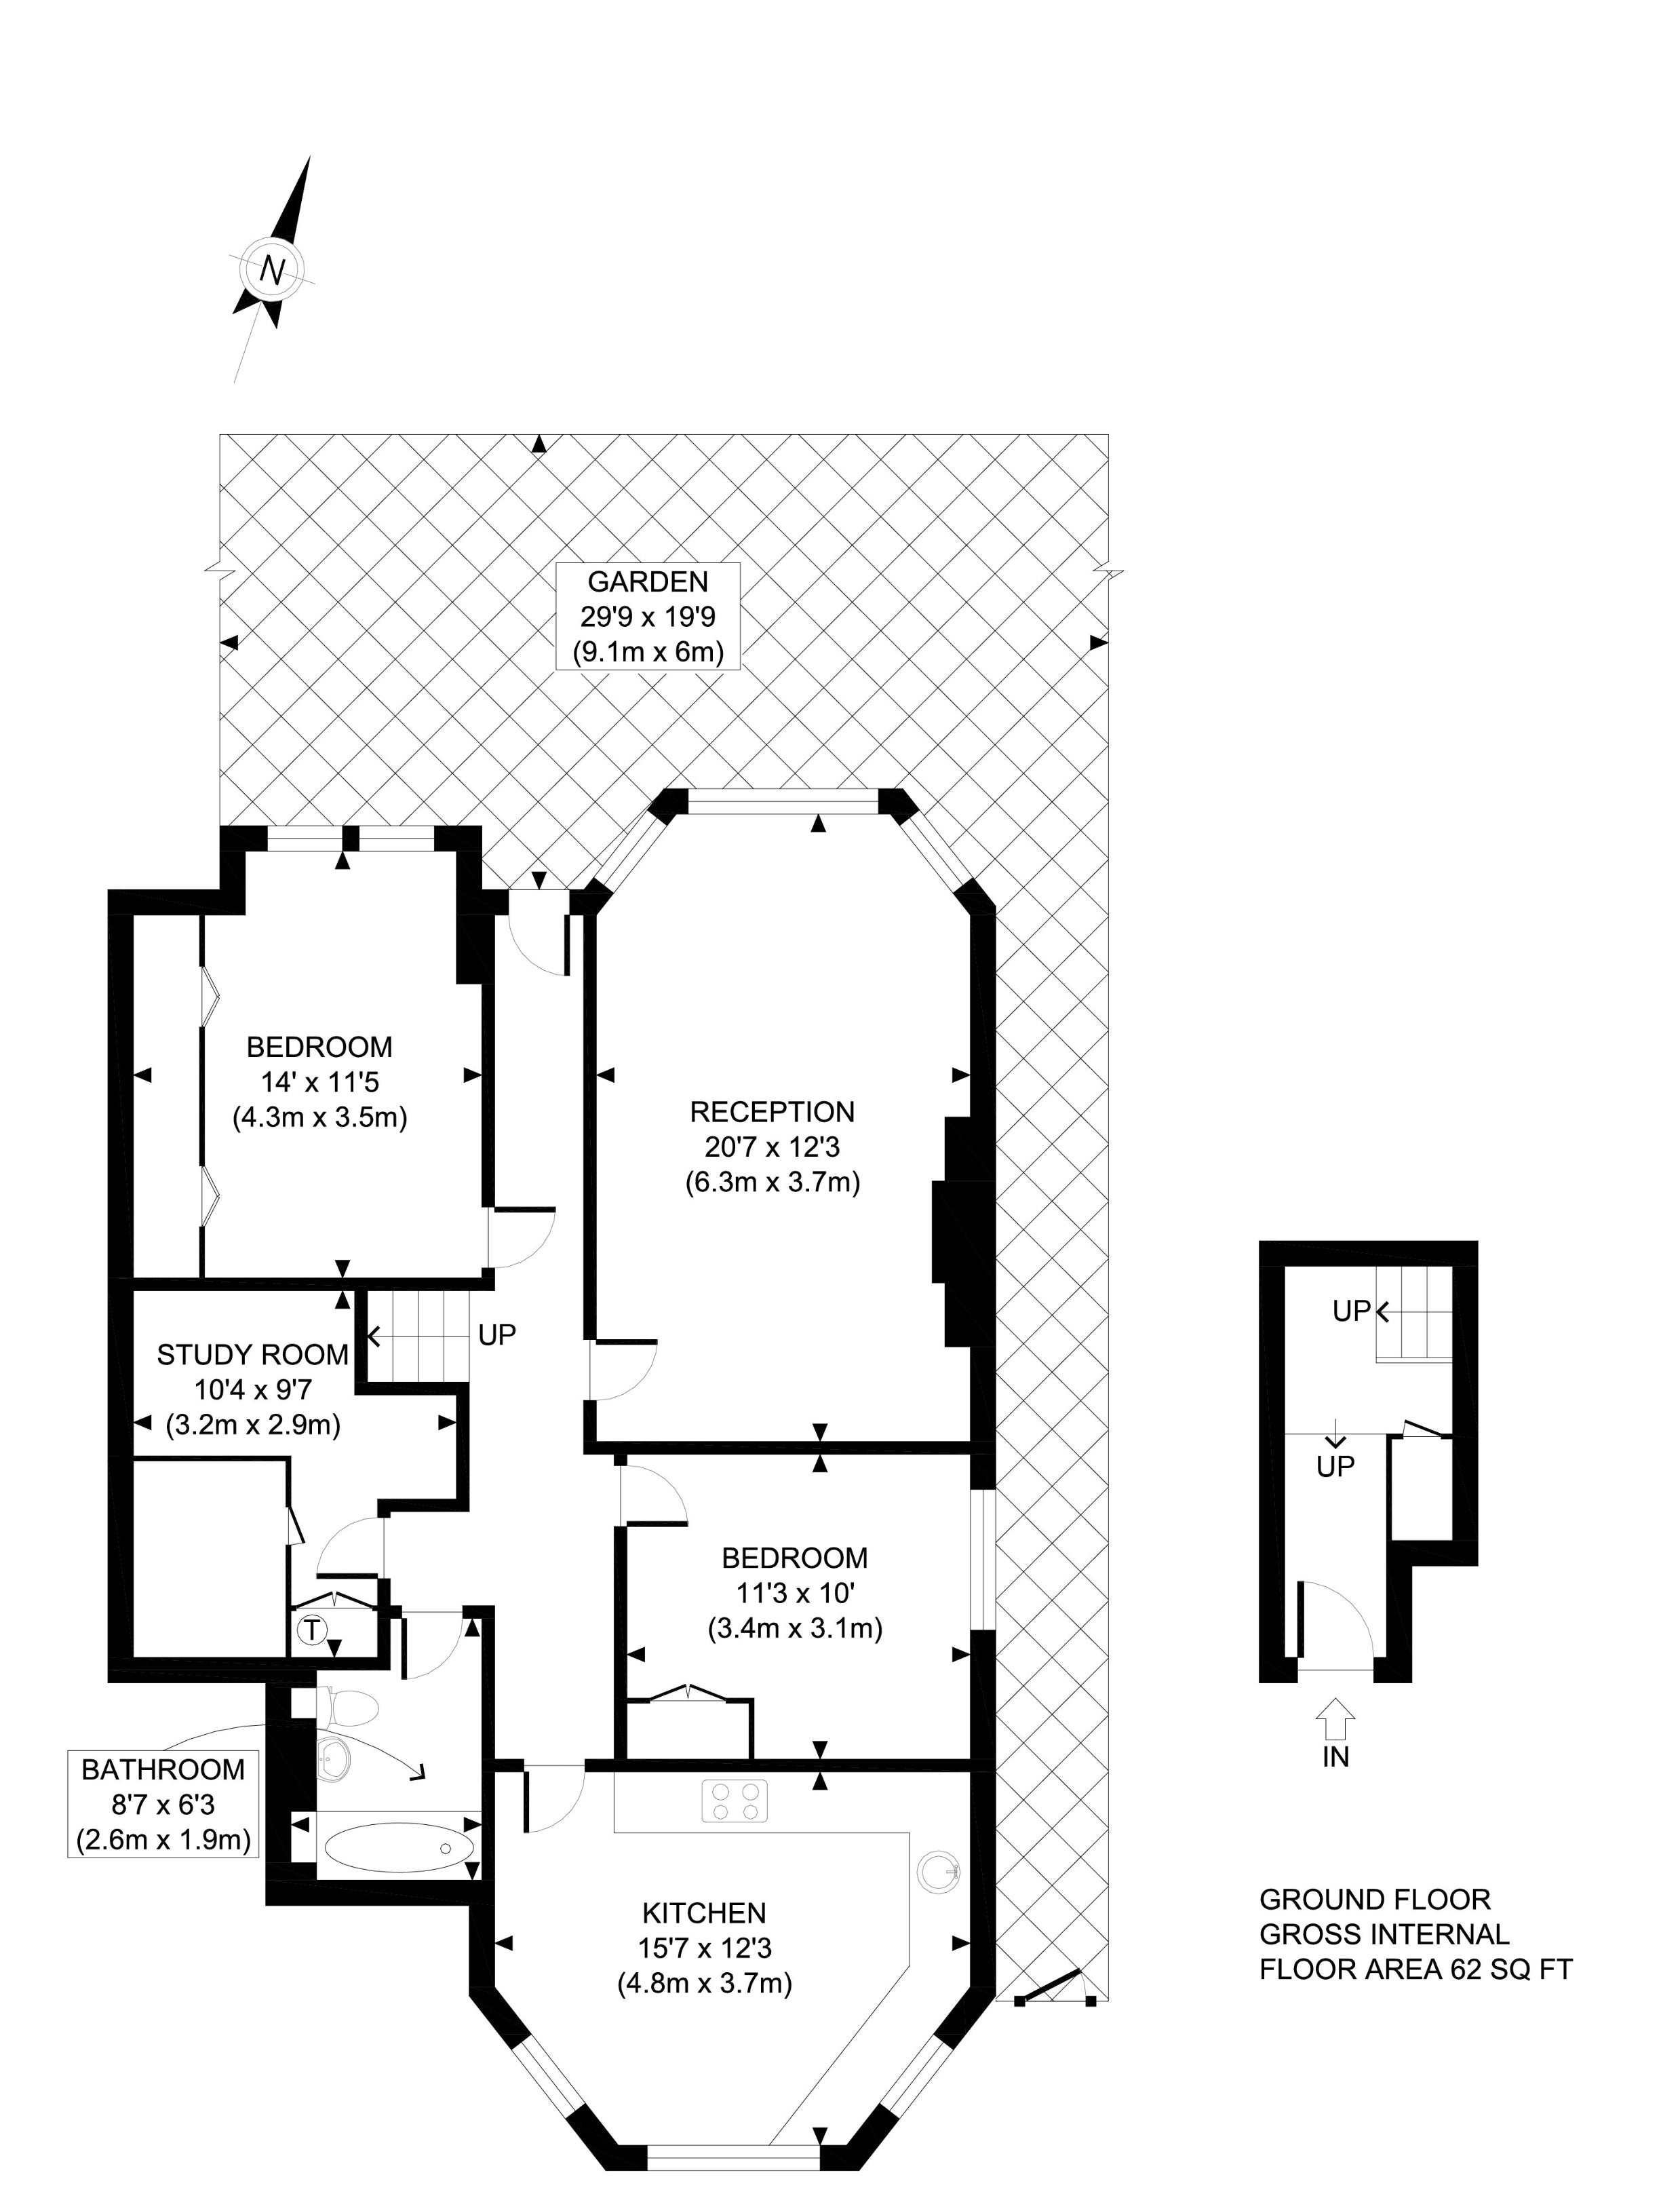 Floor Plans For Property Professionals In Super Fast Time Photoplan Schematic Right Carousel Arrow